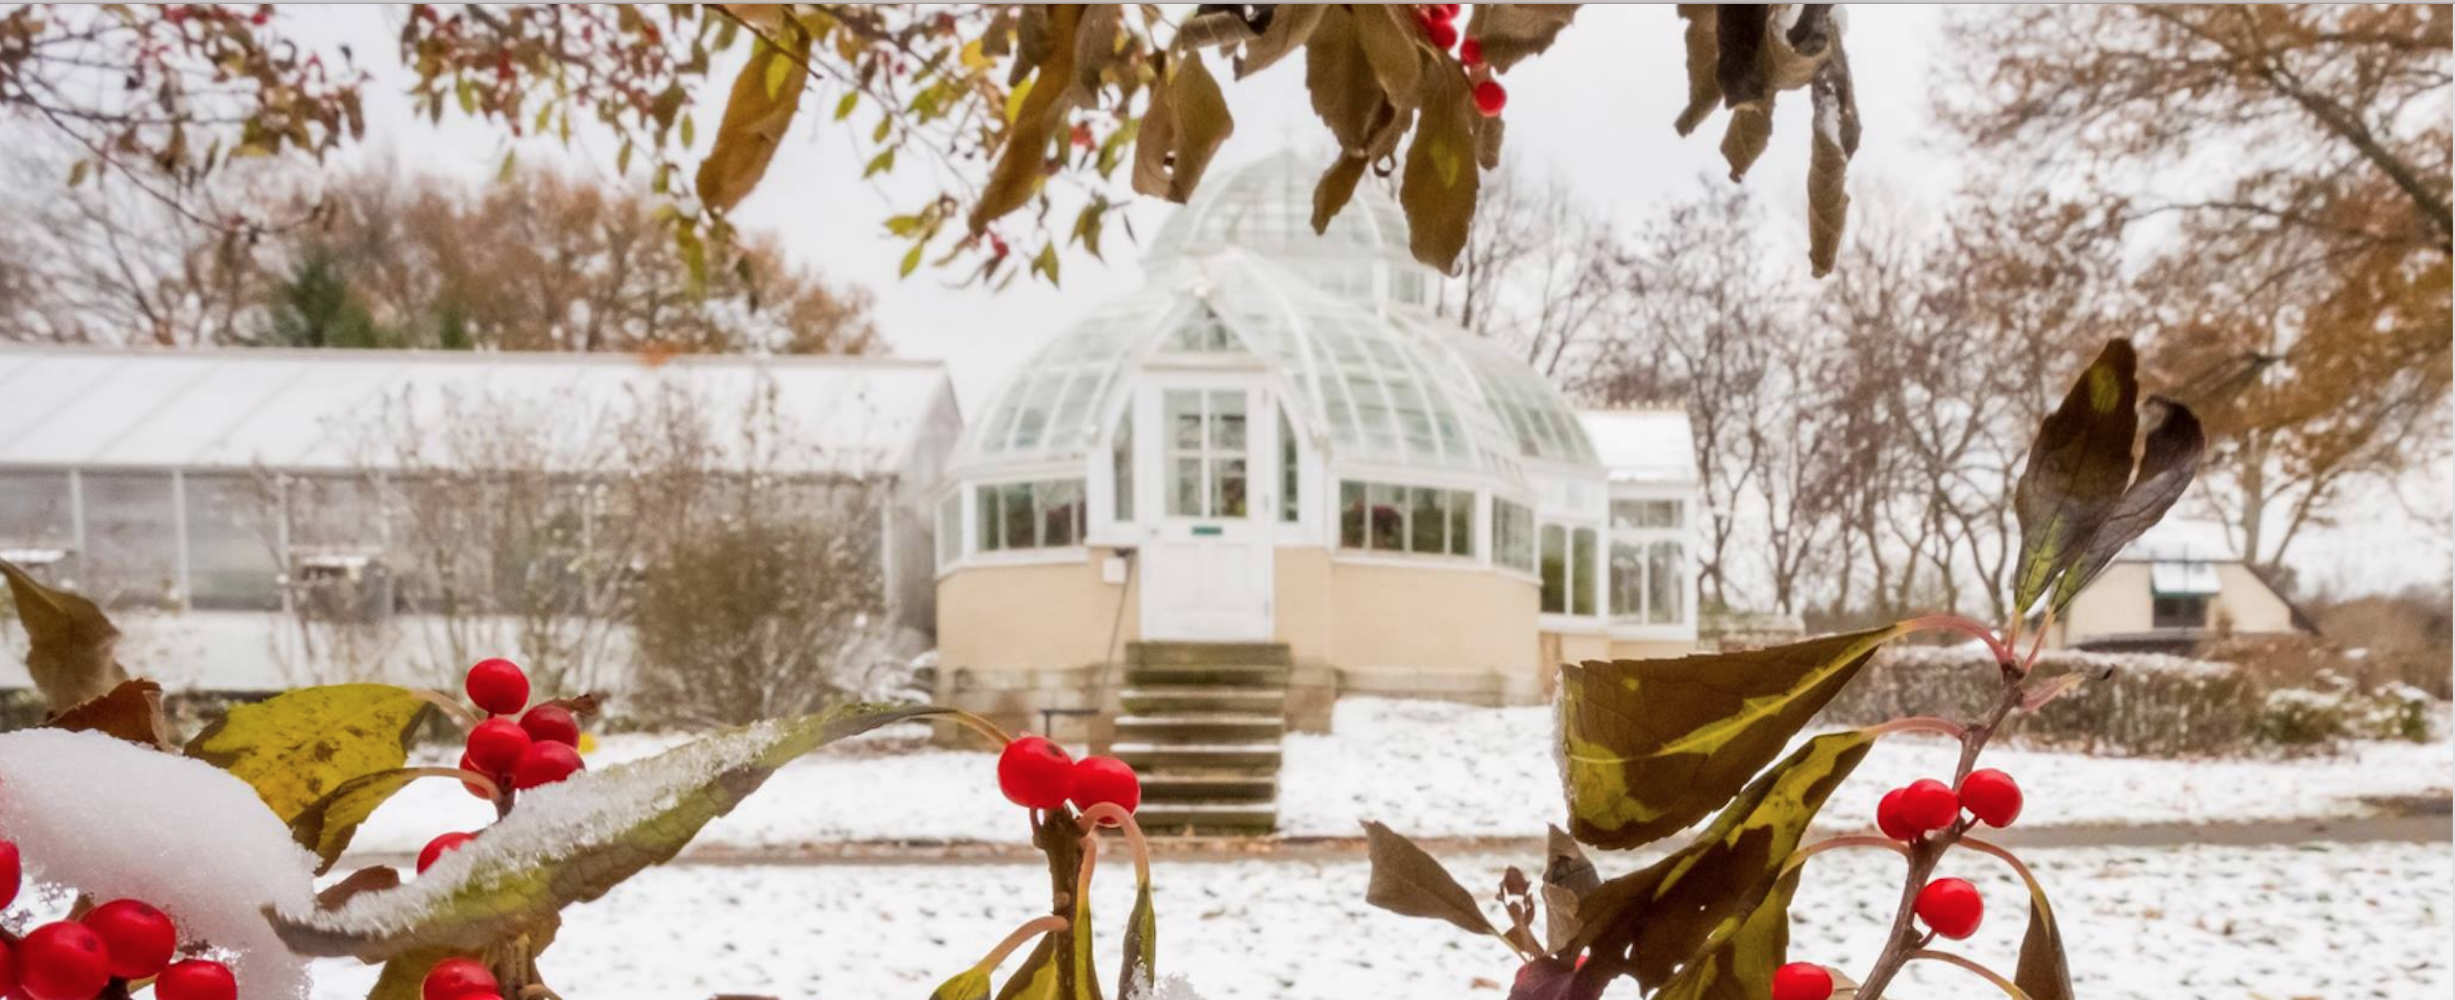 Frick greenhouse in winter